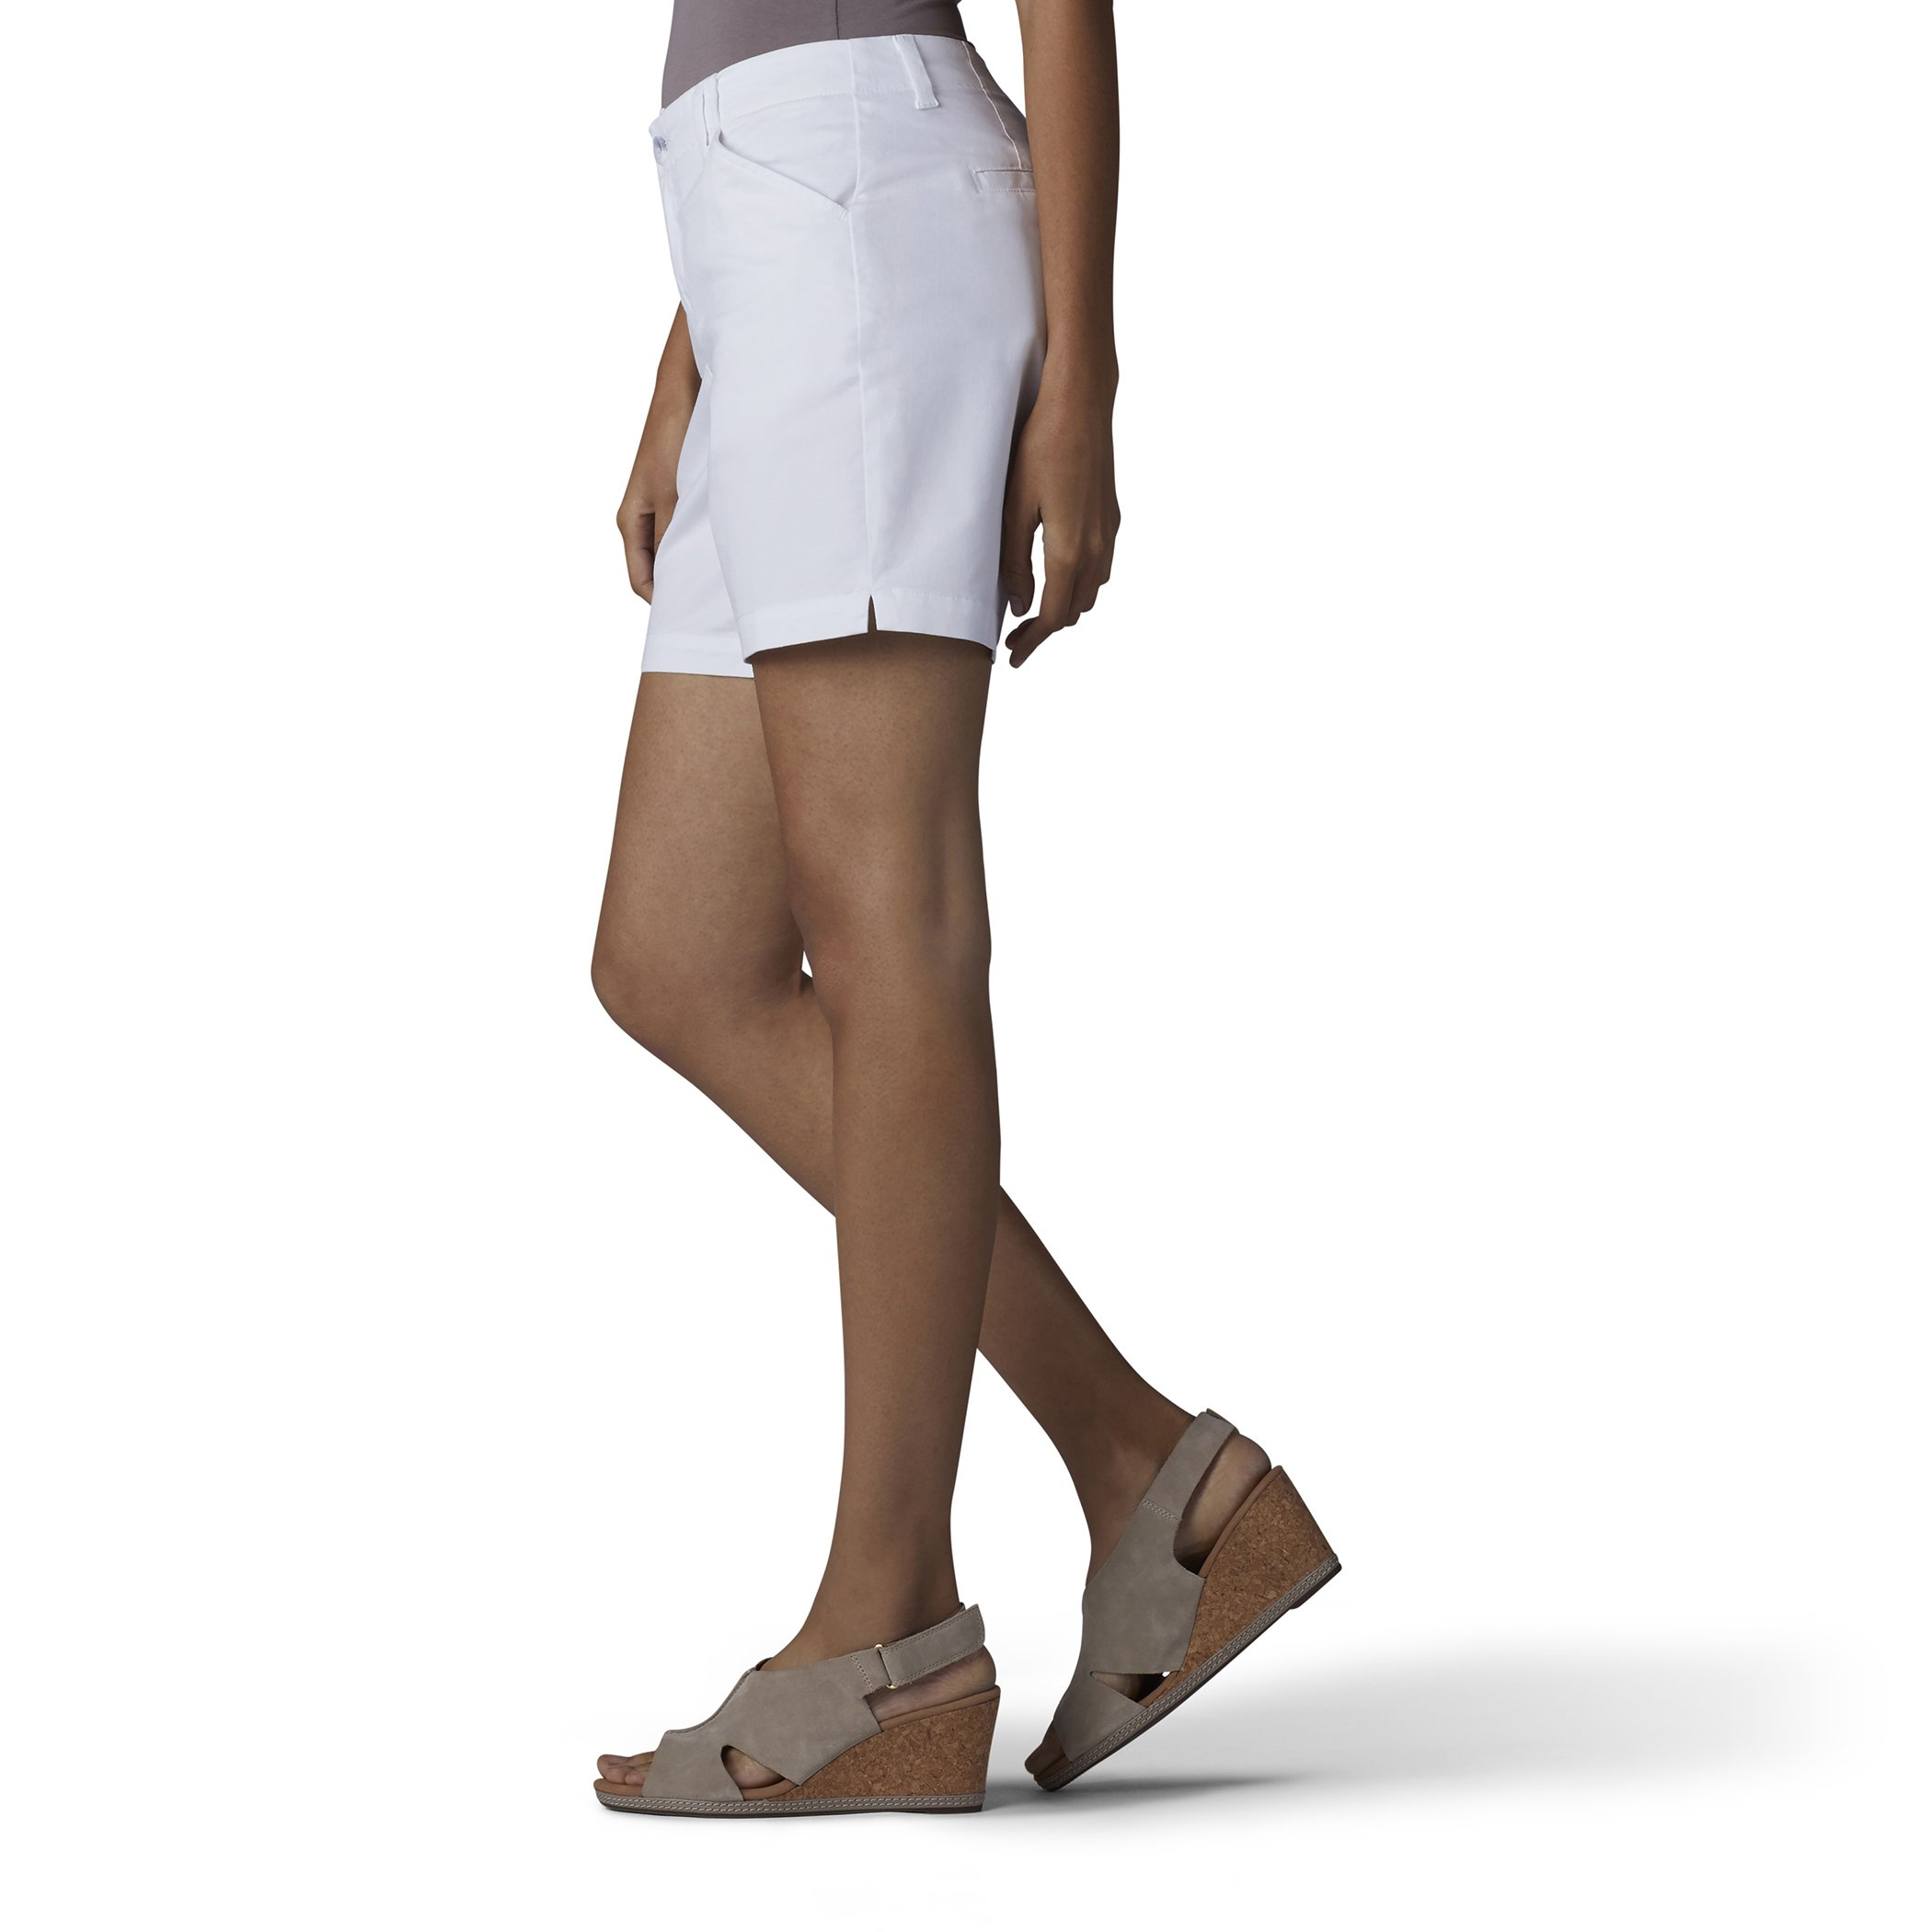 LEE Women's Straight Fit Tailored Chino Short, White, 12 by LEE (Image #3)